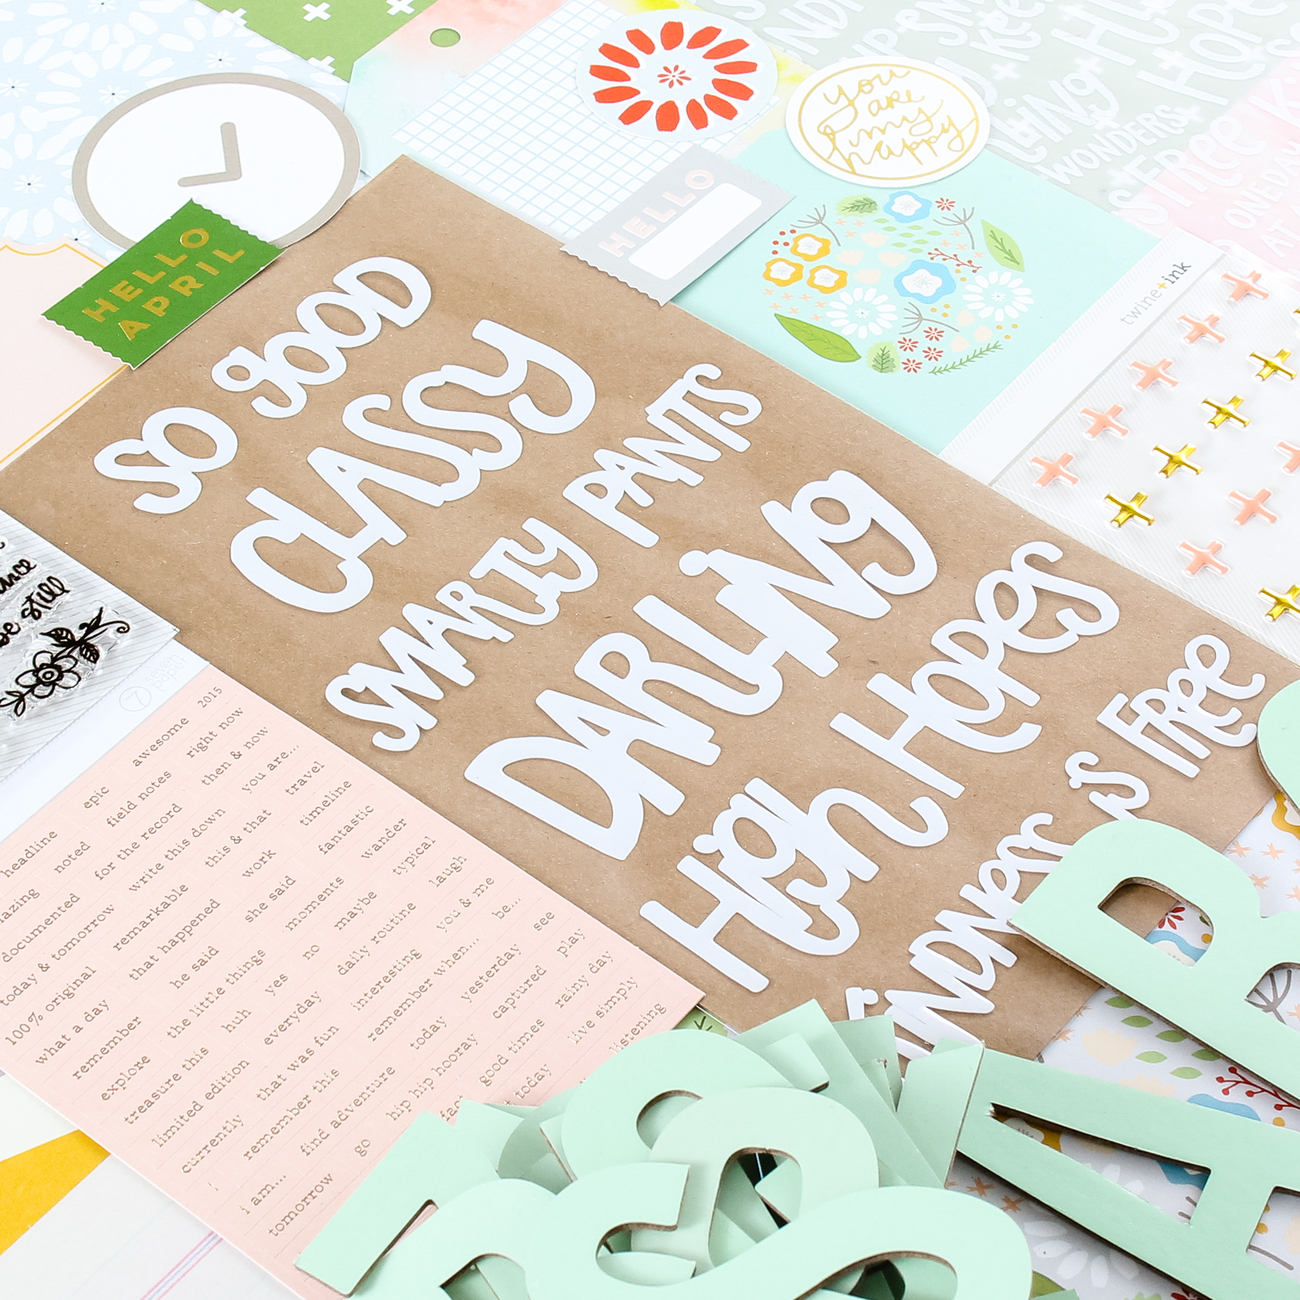 Picture 3 of Lisse Street Scrapbook Kit